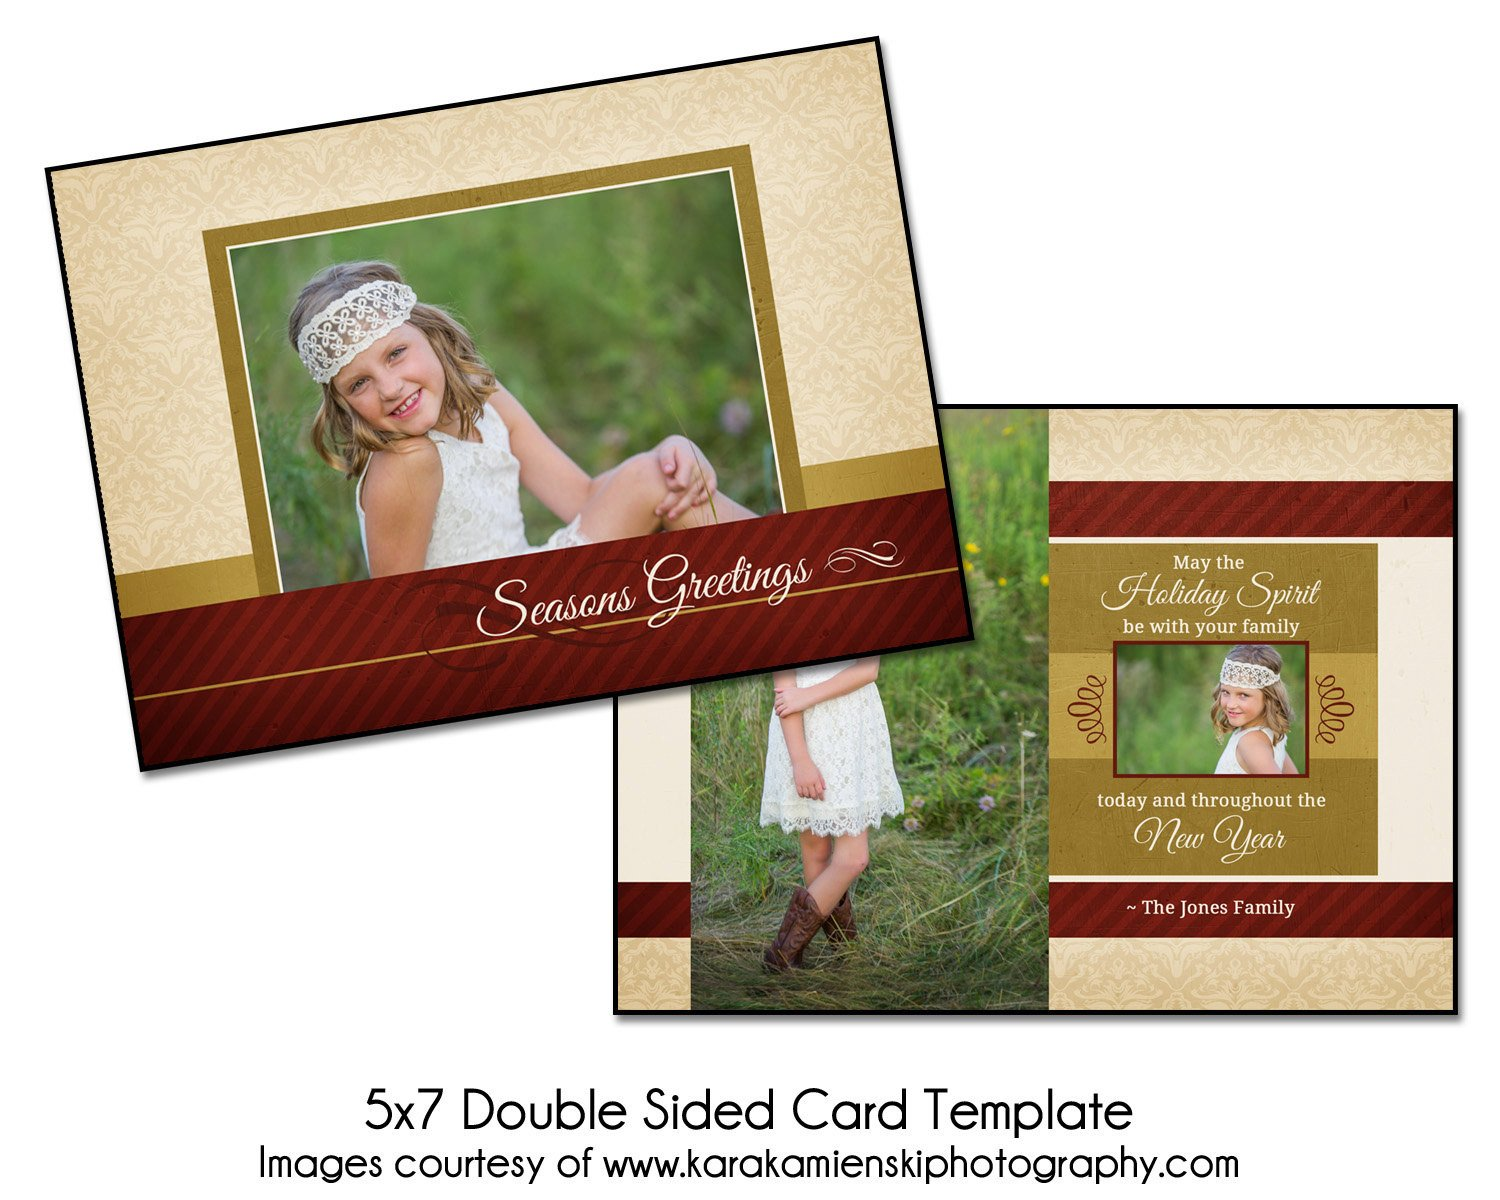 Two Sided Postcard Template Christmas Card Template Holiday Spirit 5x7 Double Sided